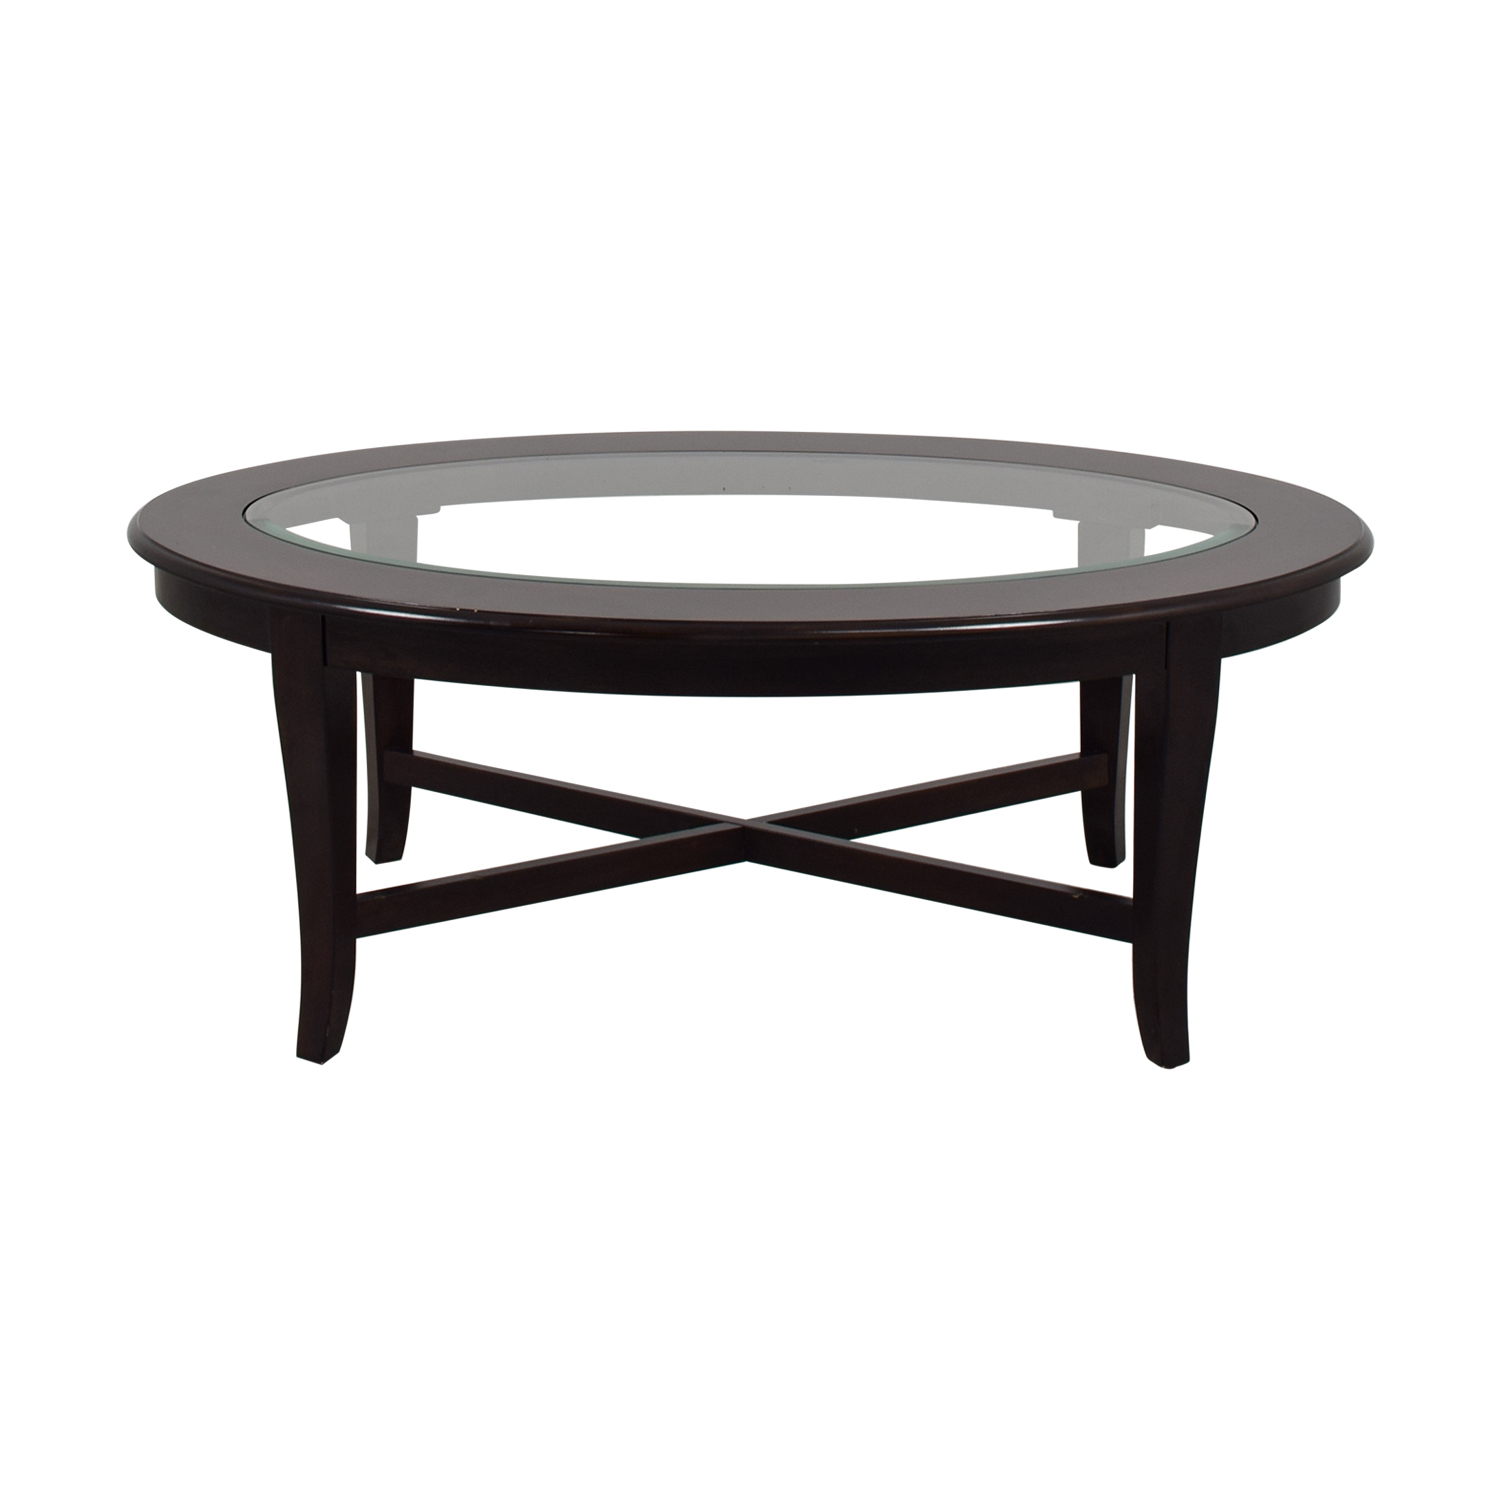 Bobs Furniture Bobs Furniture Oval Glass Coffee Table Used